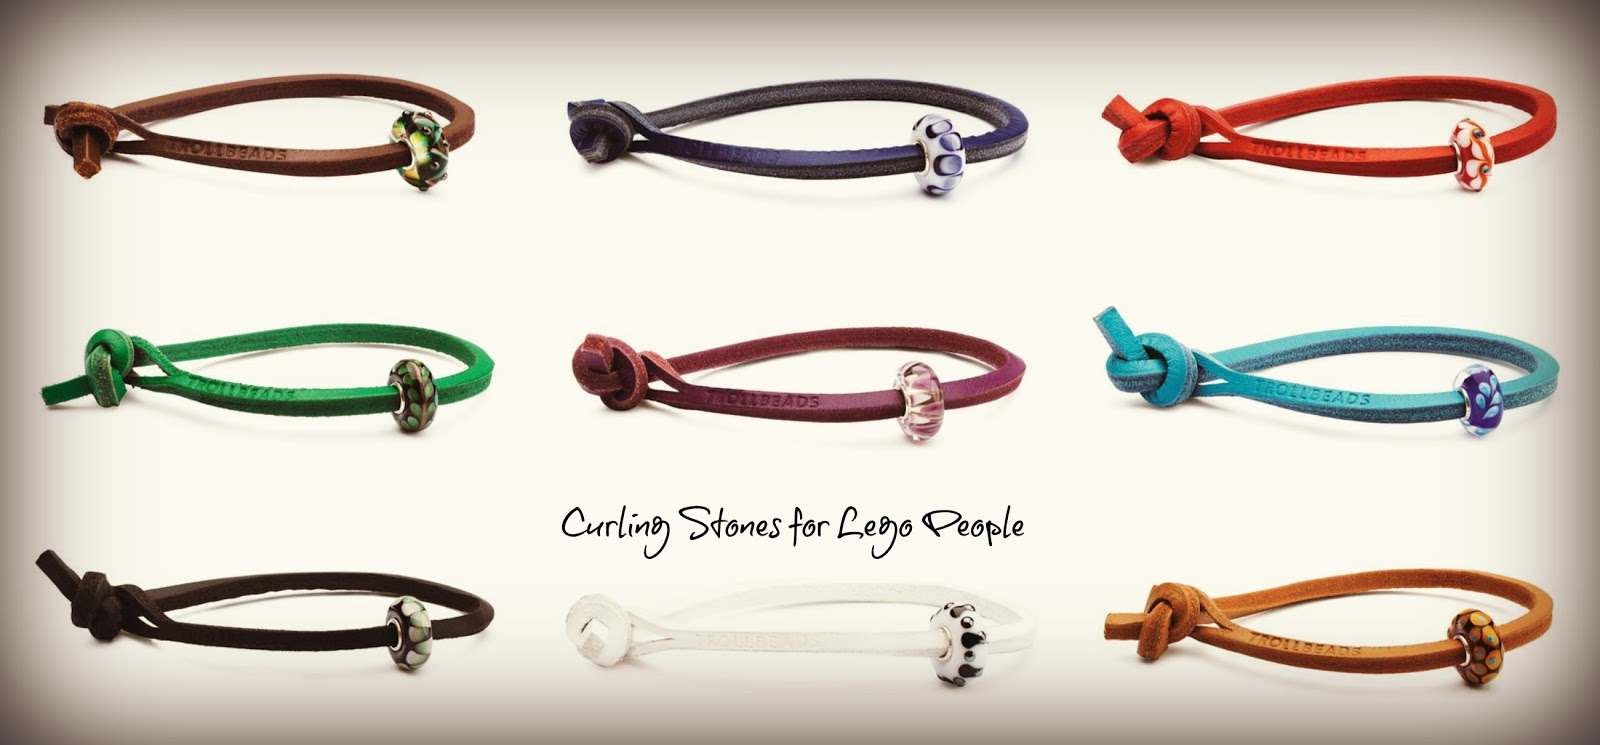 New Trollbeads Single Leather Bracelets With Unique Beads